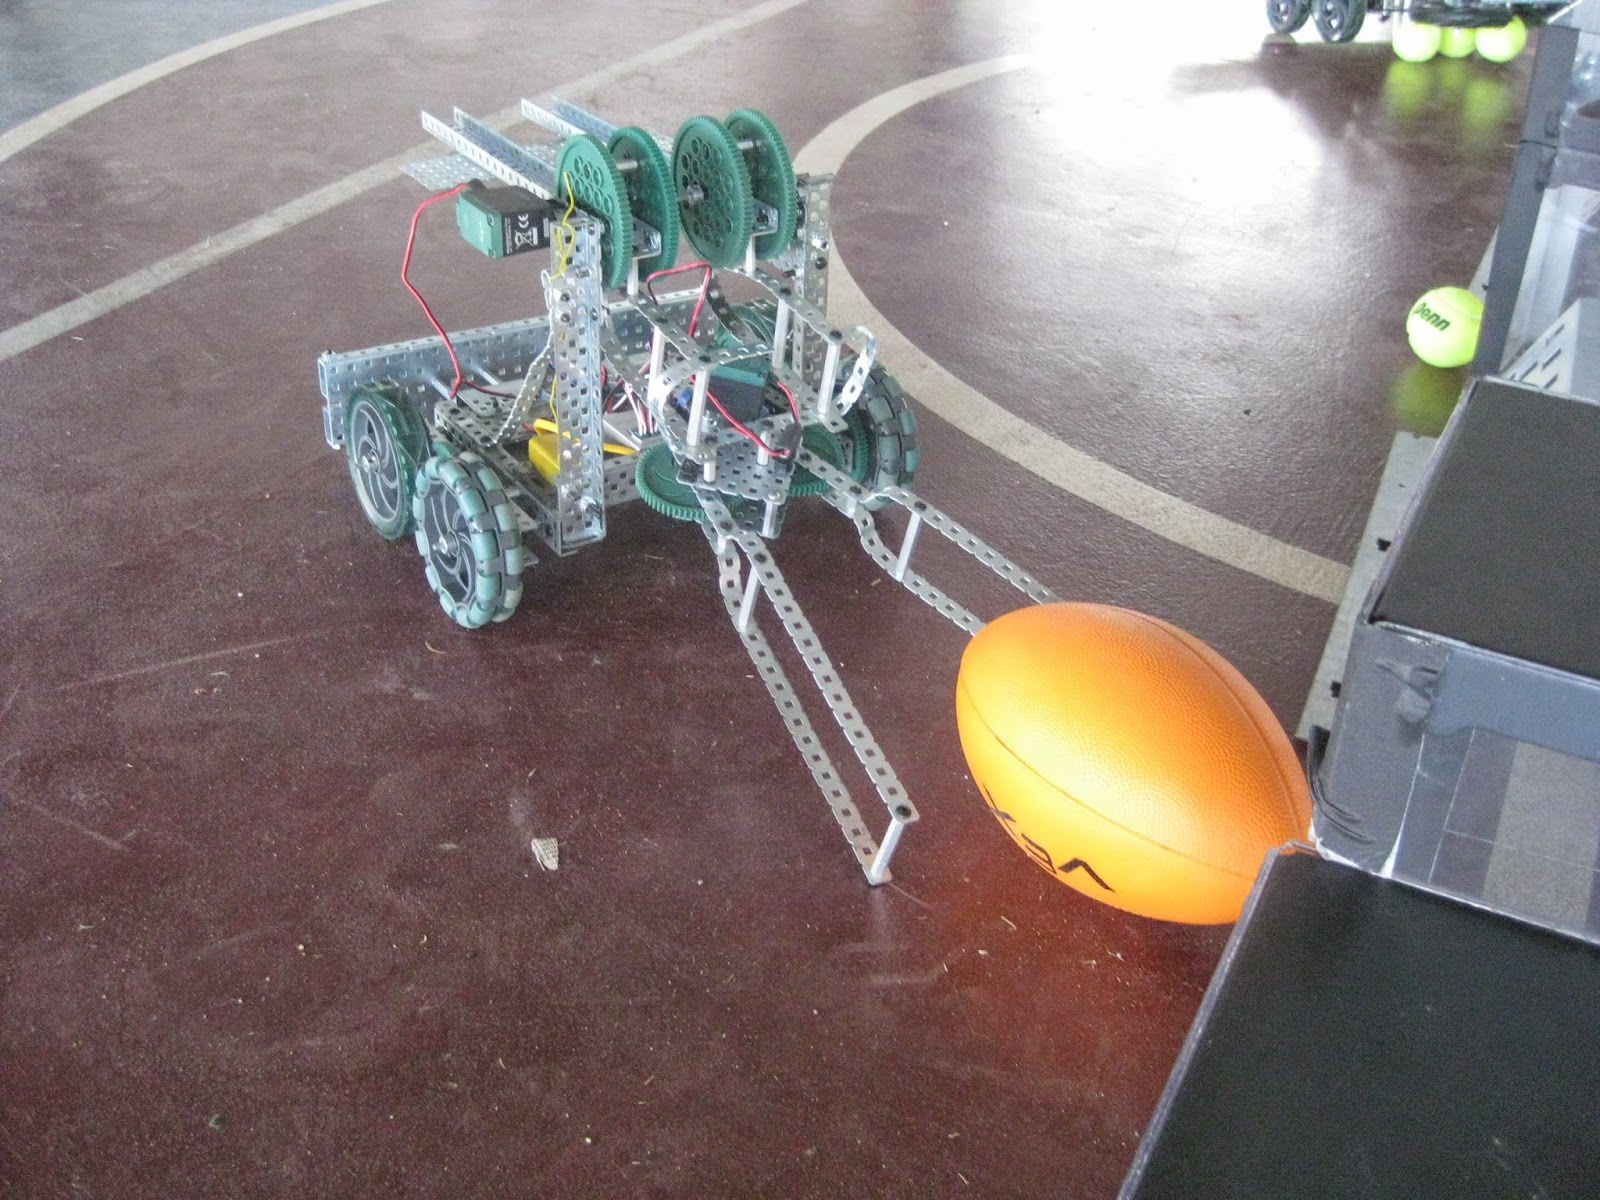 Specialized robots were created and perfected by students over the course of the school year